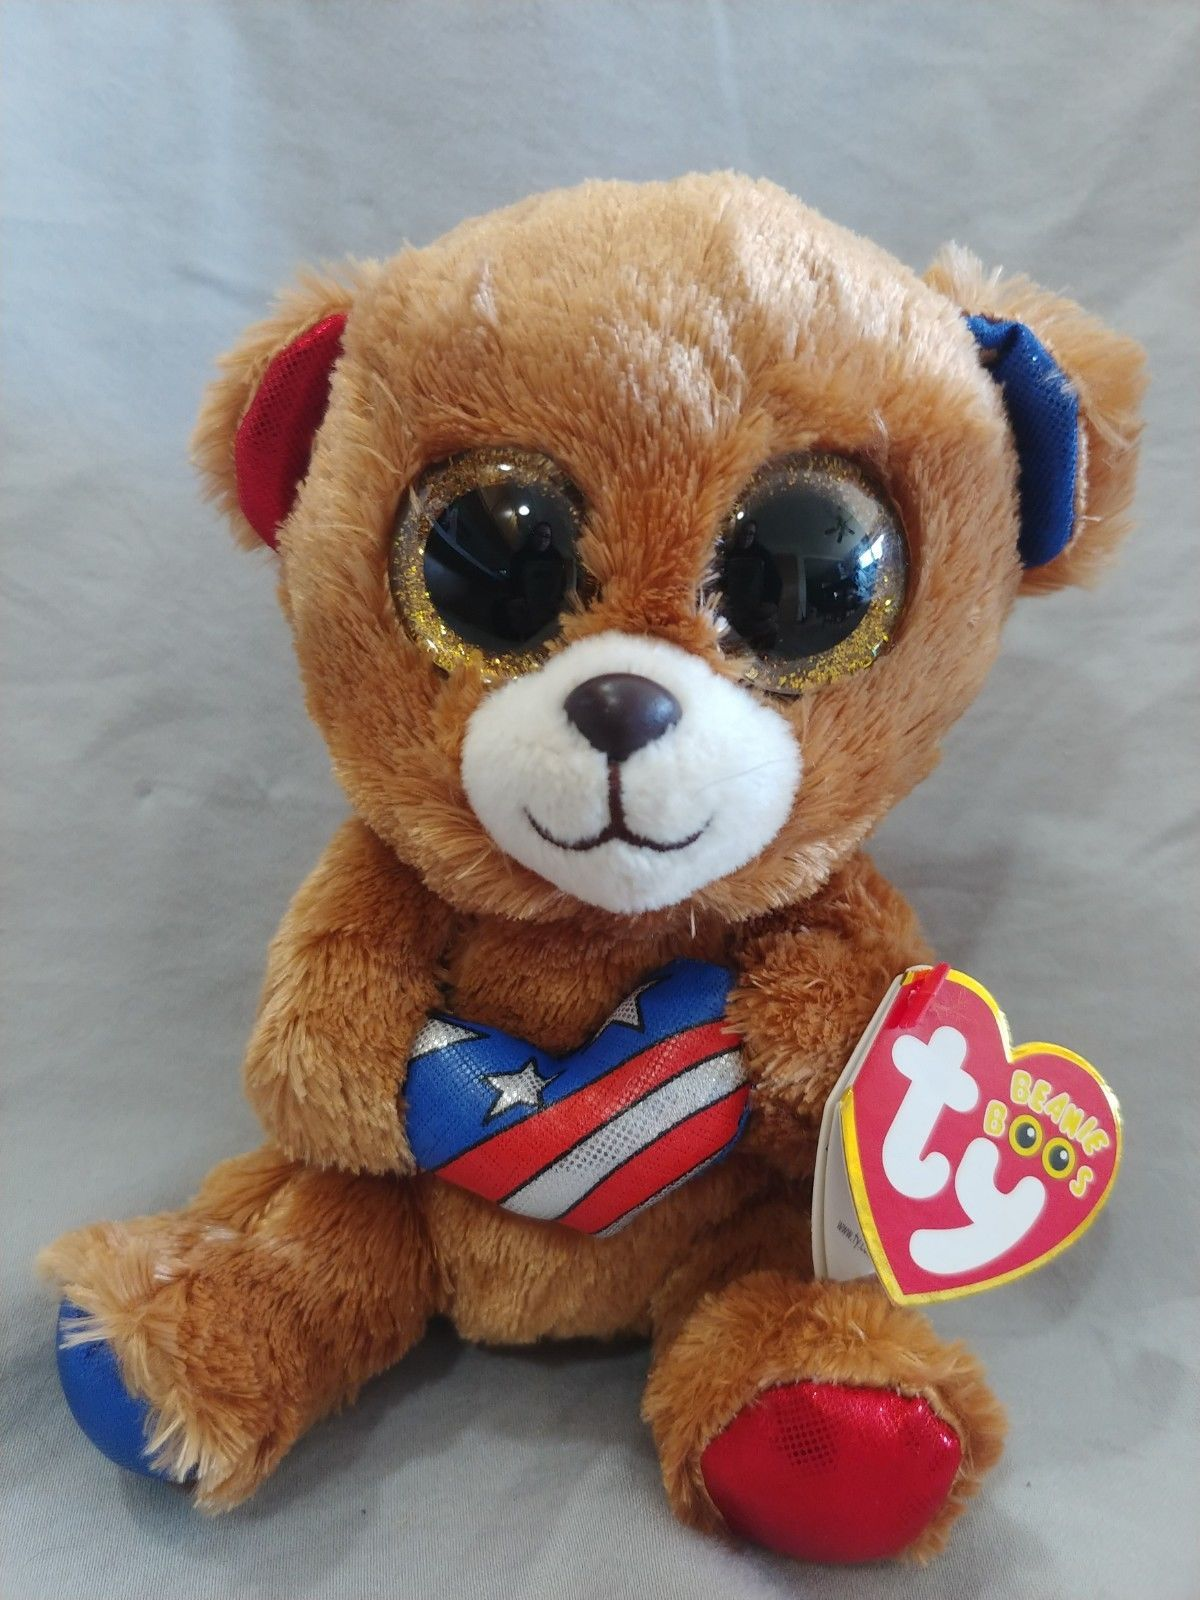 e504c8418f8 Ty Beanie Boo Stars the bear Cracker Barrel and 50 similar items